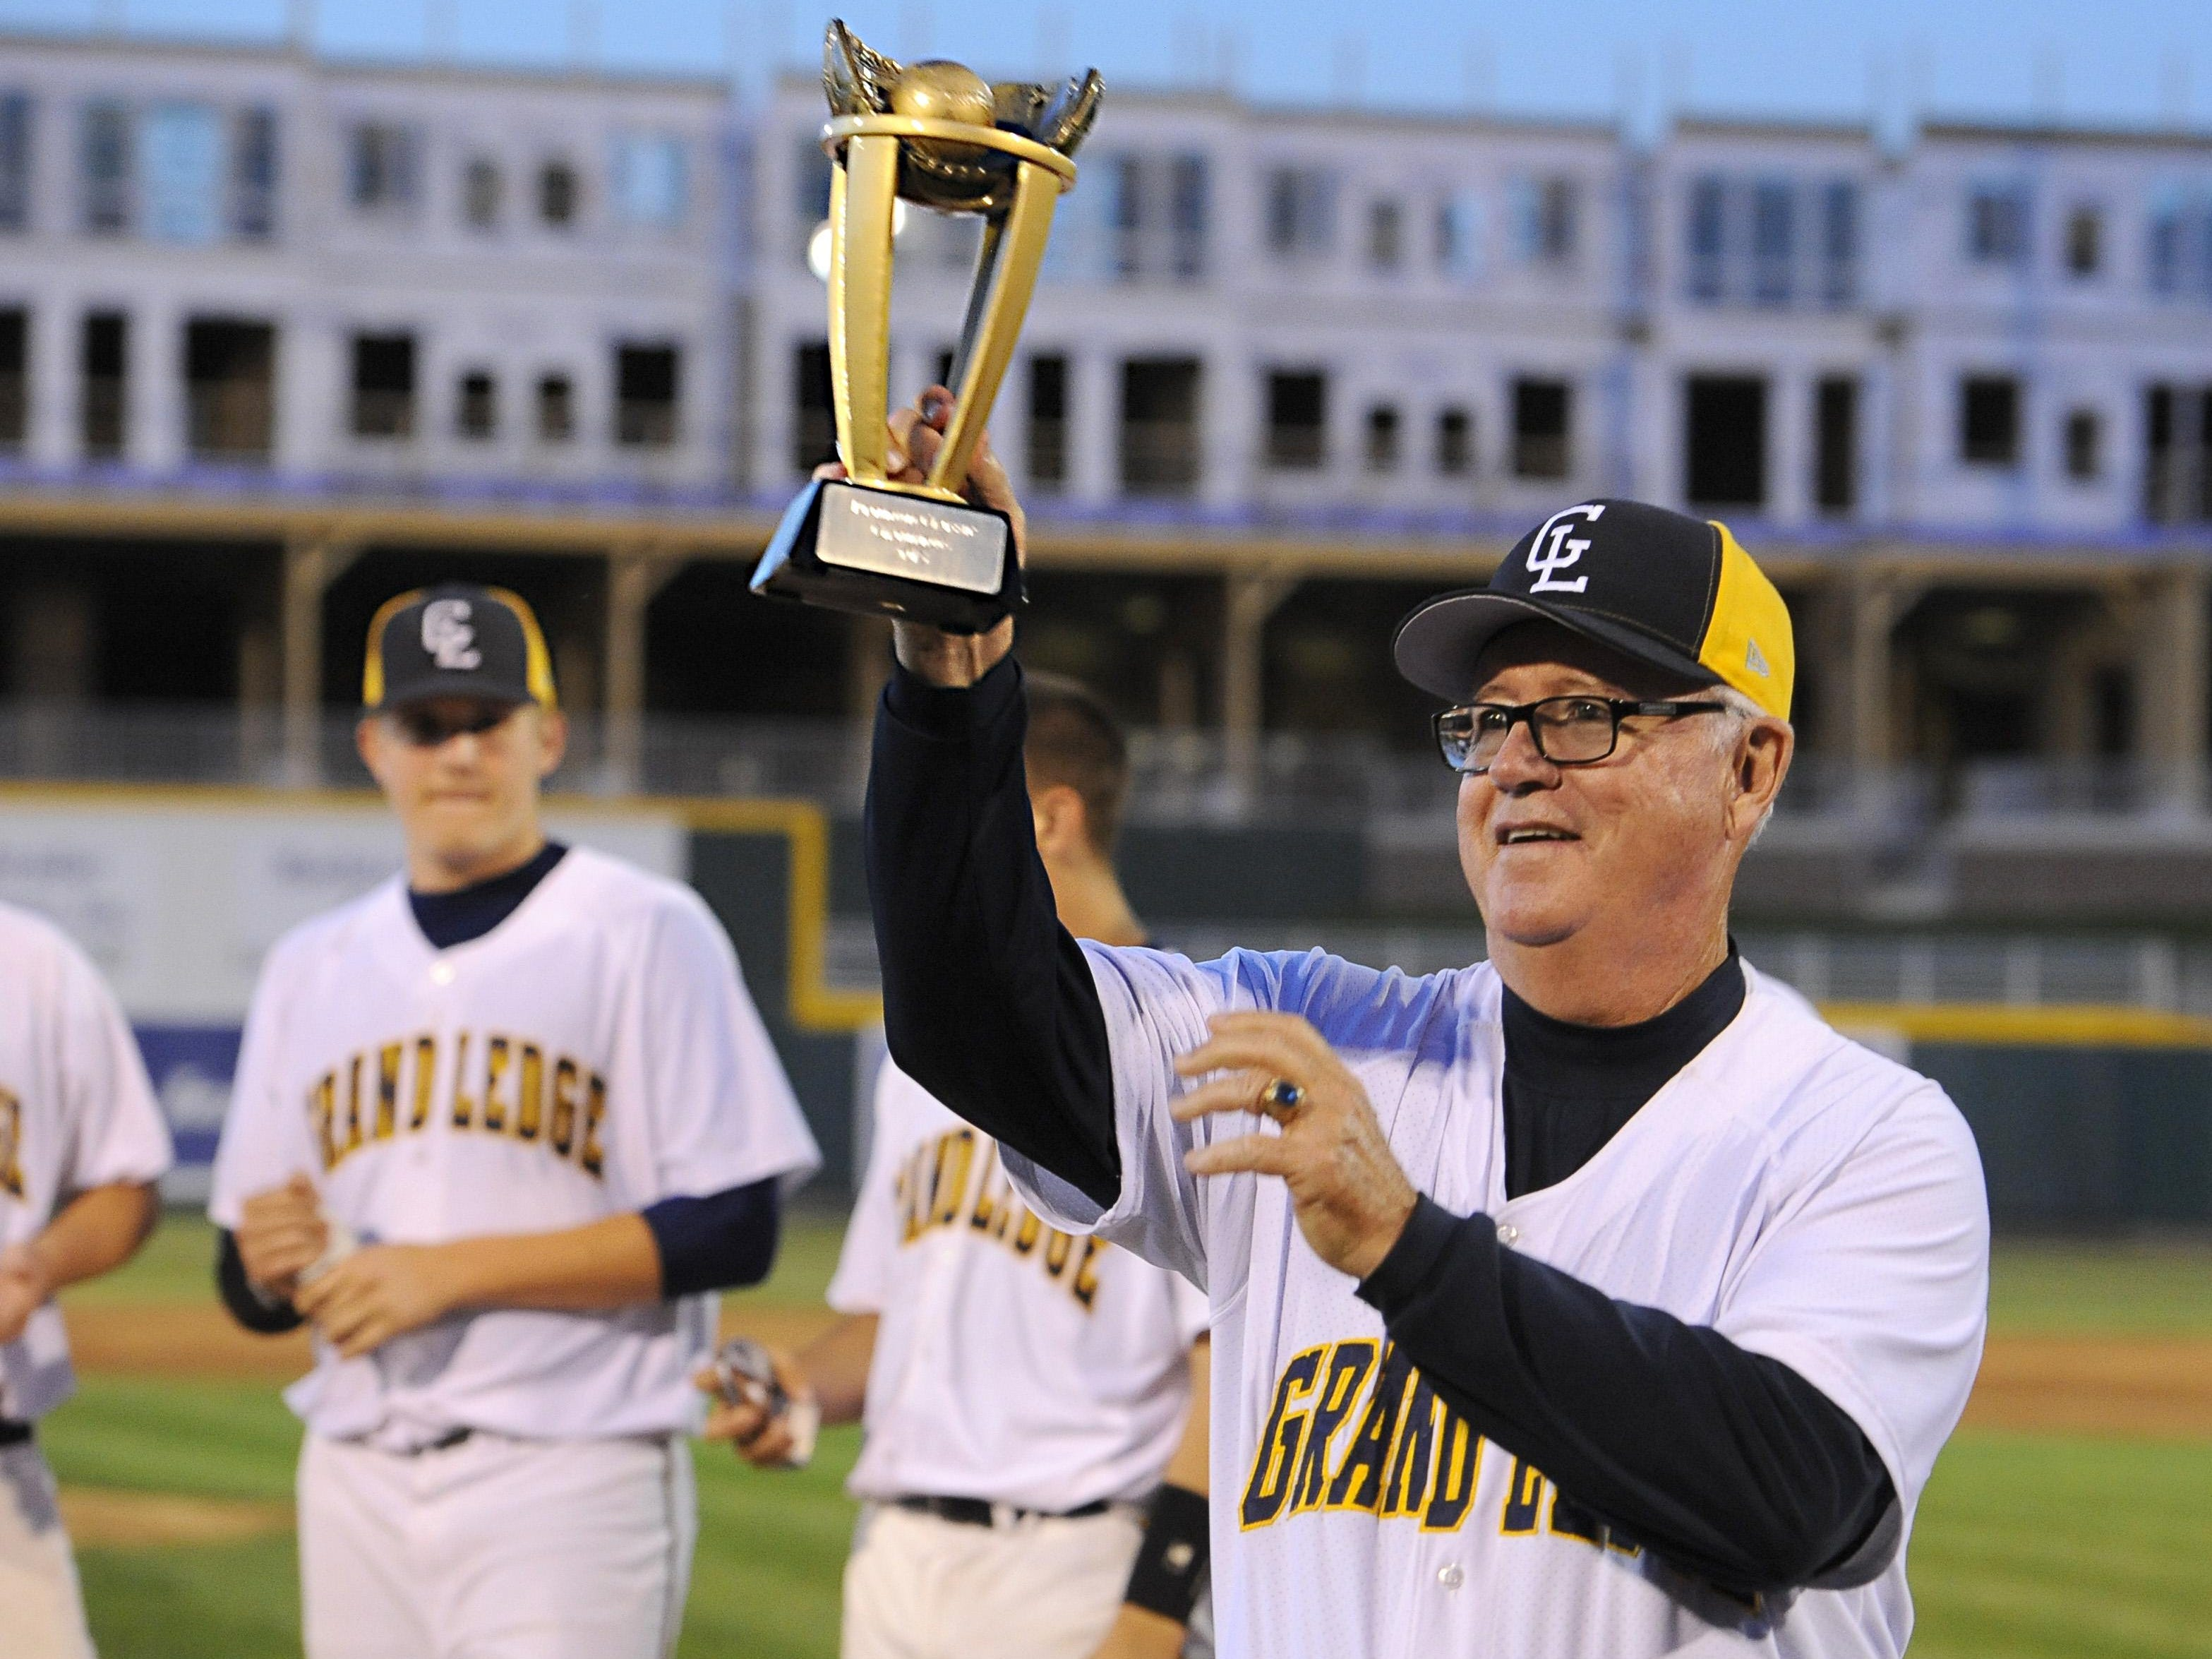 Grand Ledge baseball coach Pat O'Keefe will be enshrined in the Michigan Baseball Hall of Fame on Thursday.